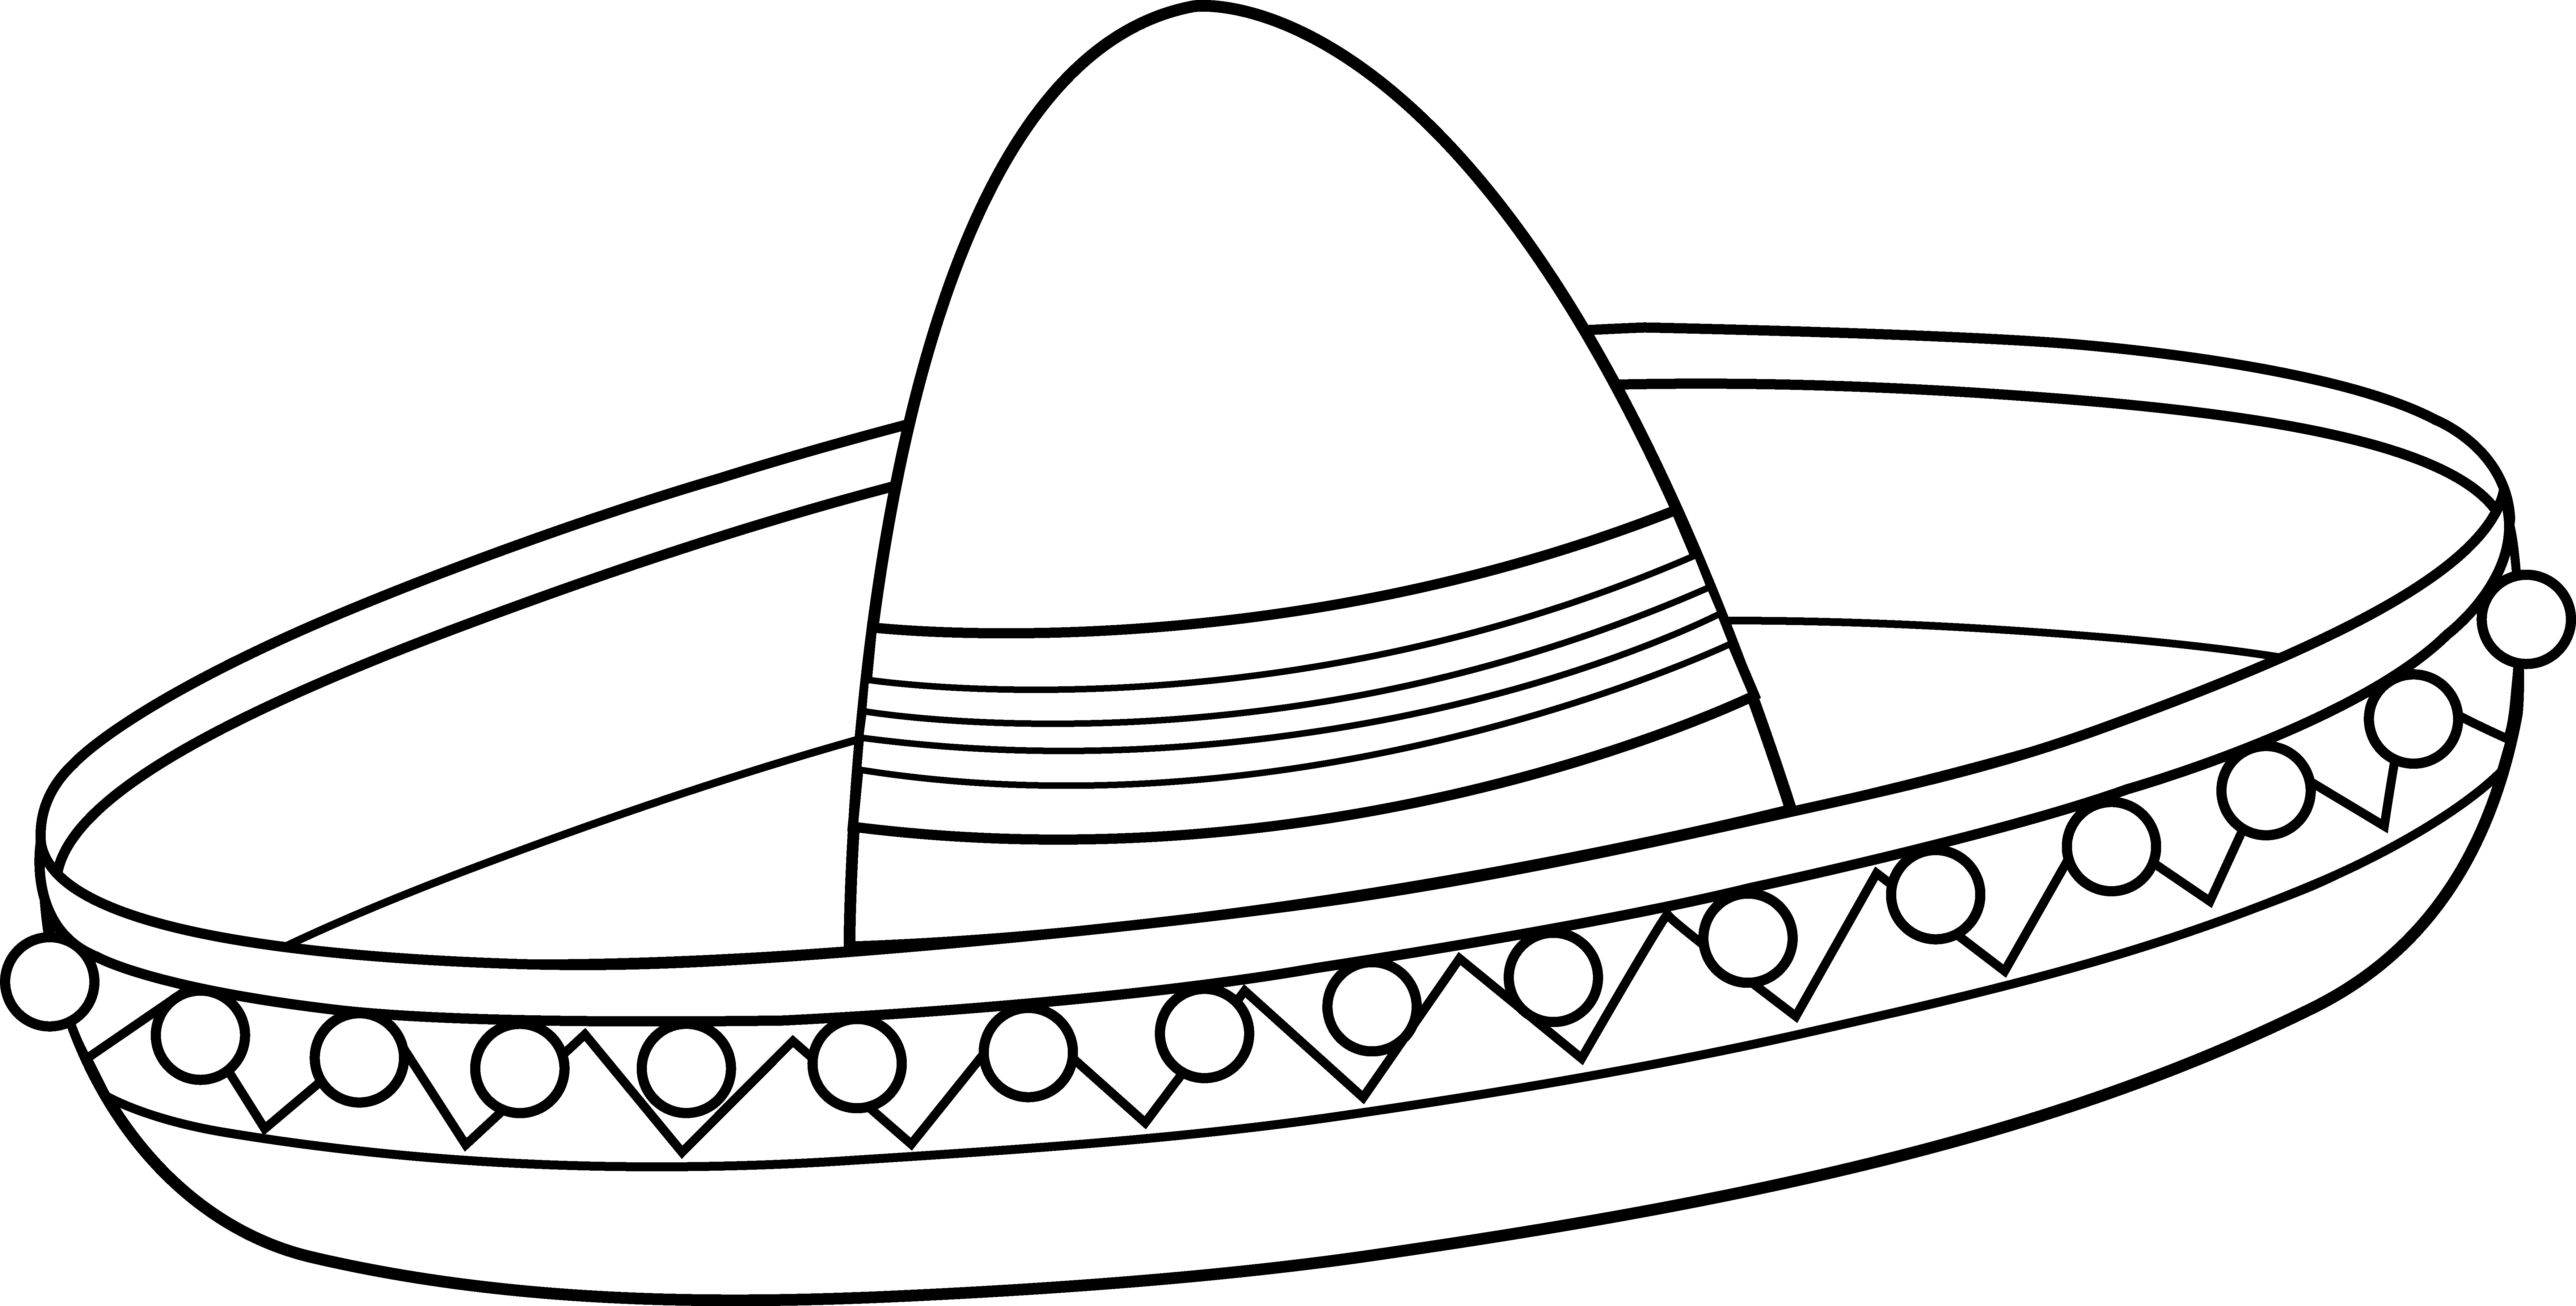 Sombrero coloring page free. Hat clipart mariachi